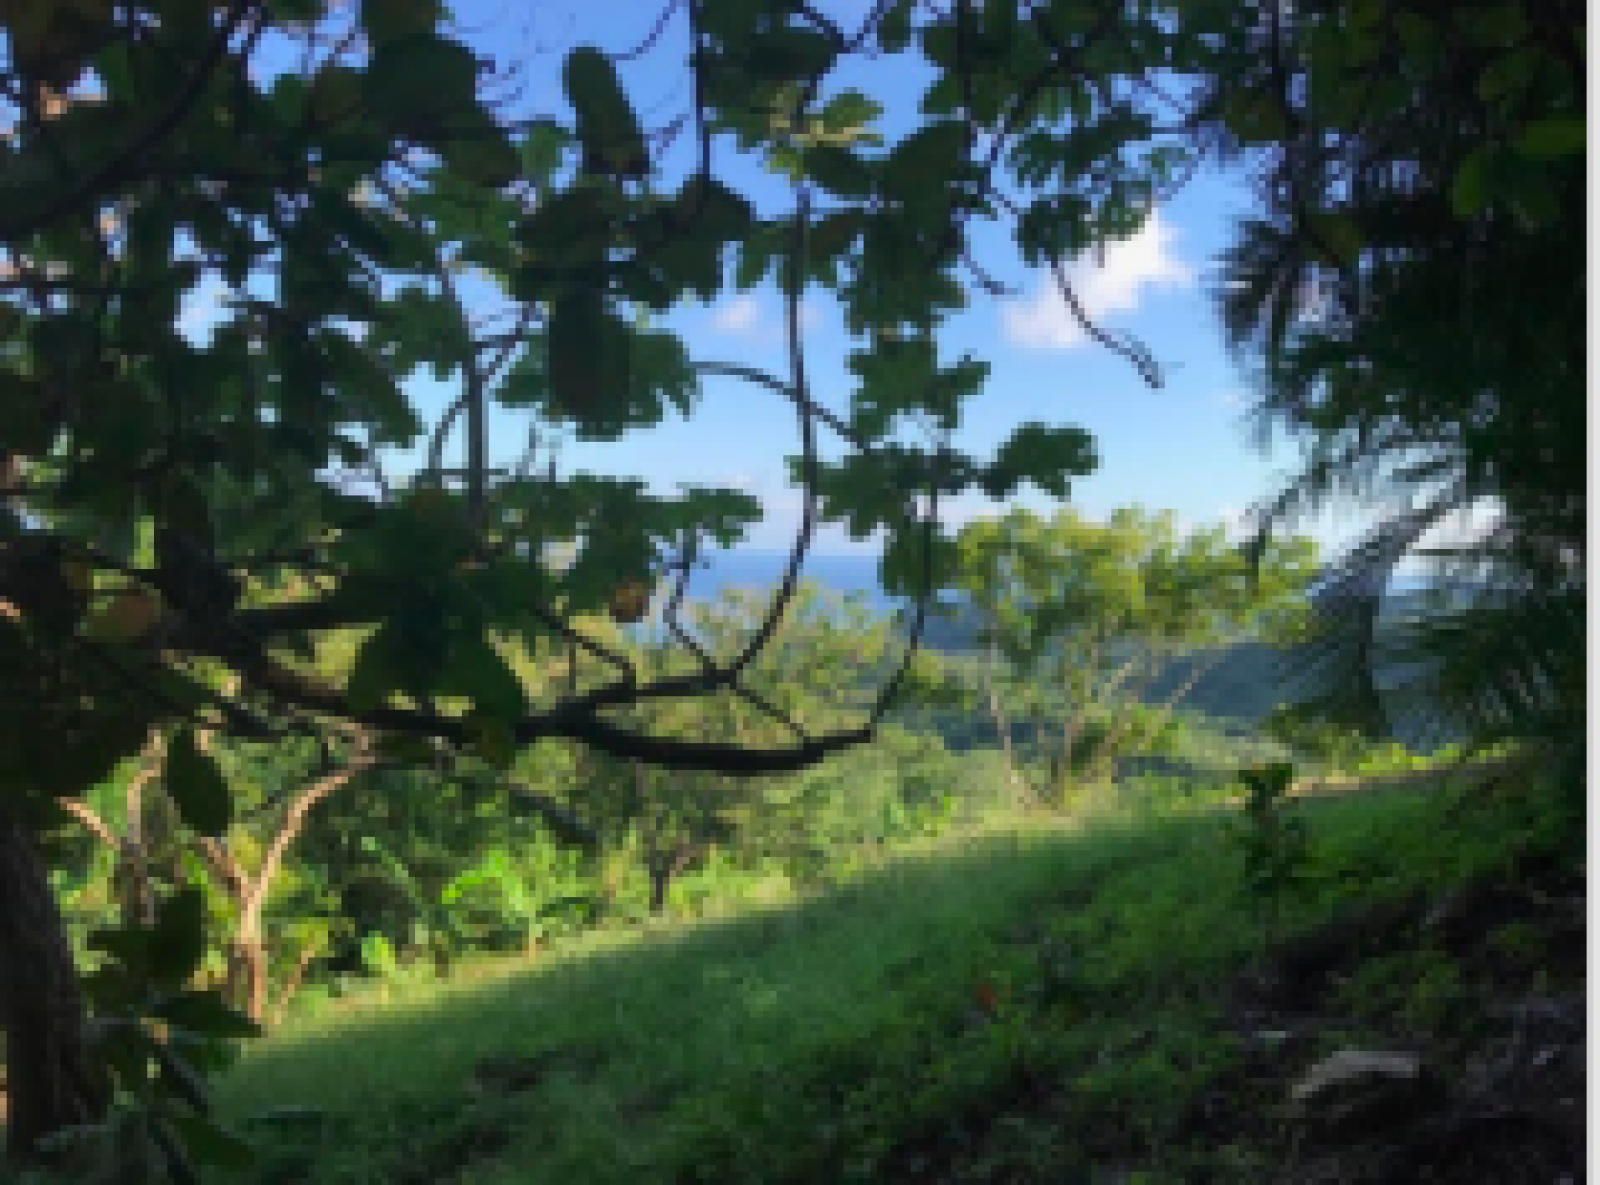 Over the rolling hills sits the Caribbean Sea peaking through the vegetation.